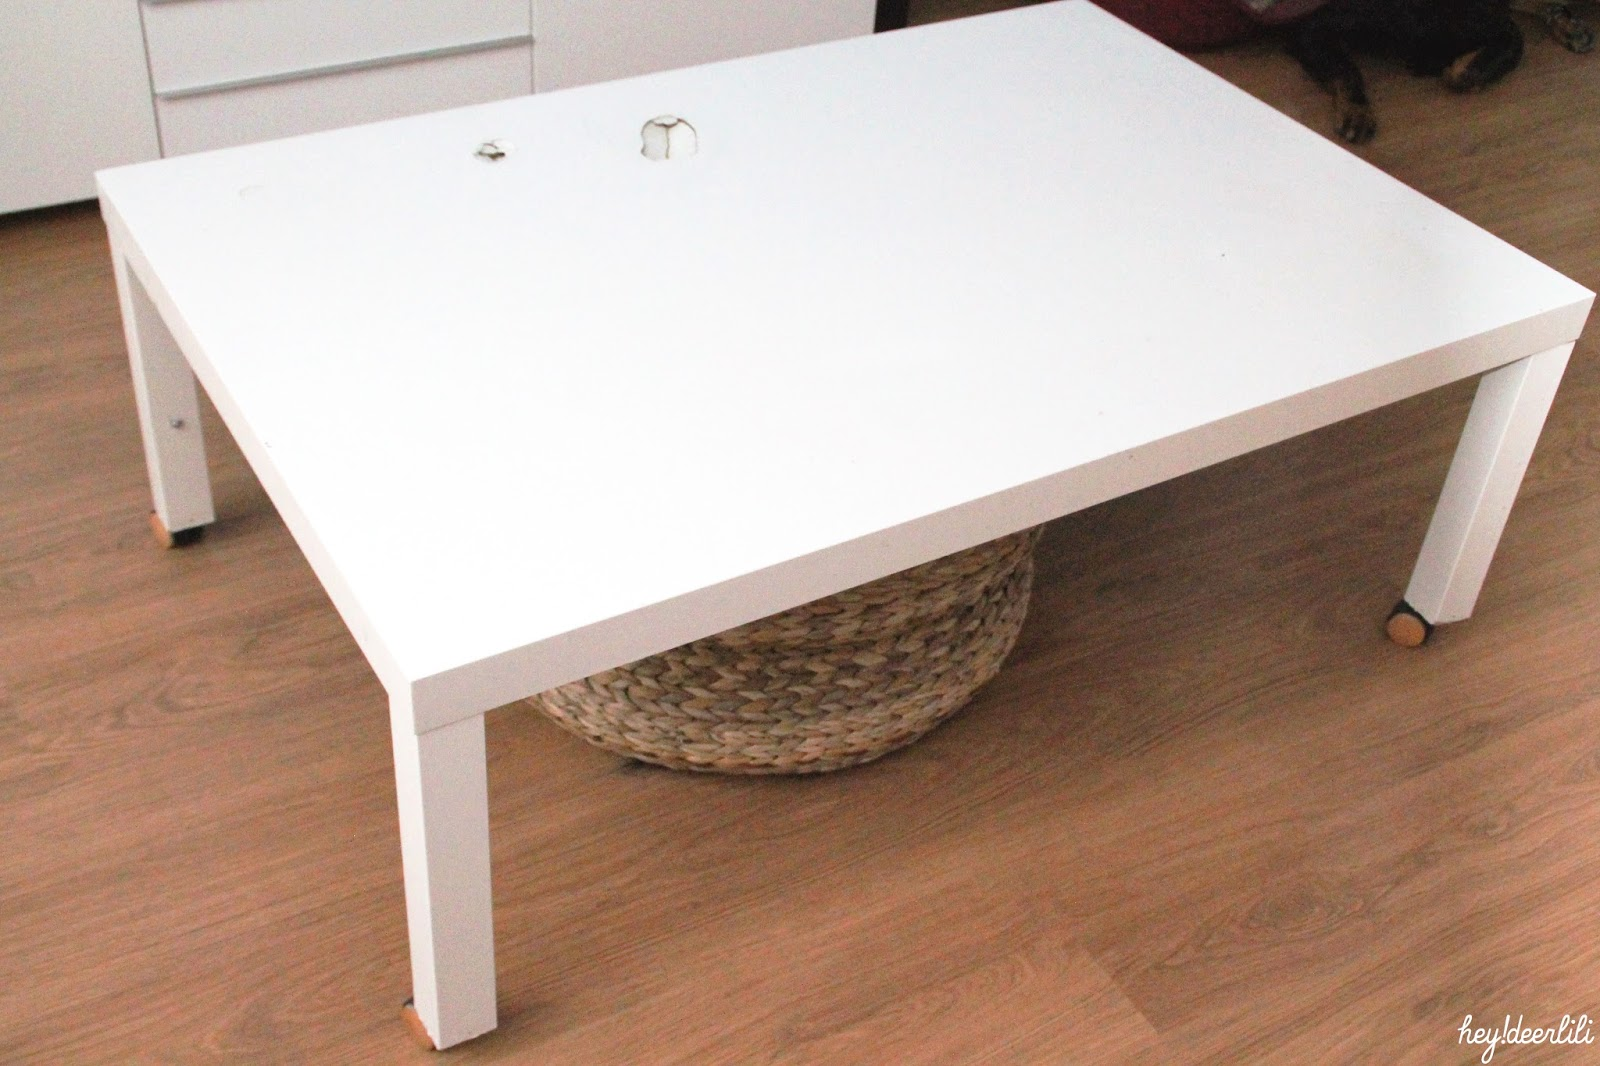 Hey deer lili retaper un basique la table basse ikea - Ikea plateau de table ...